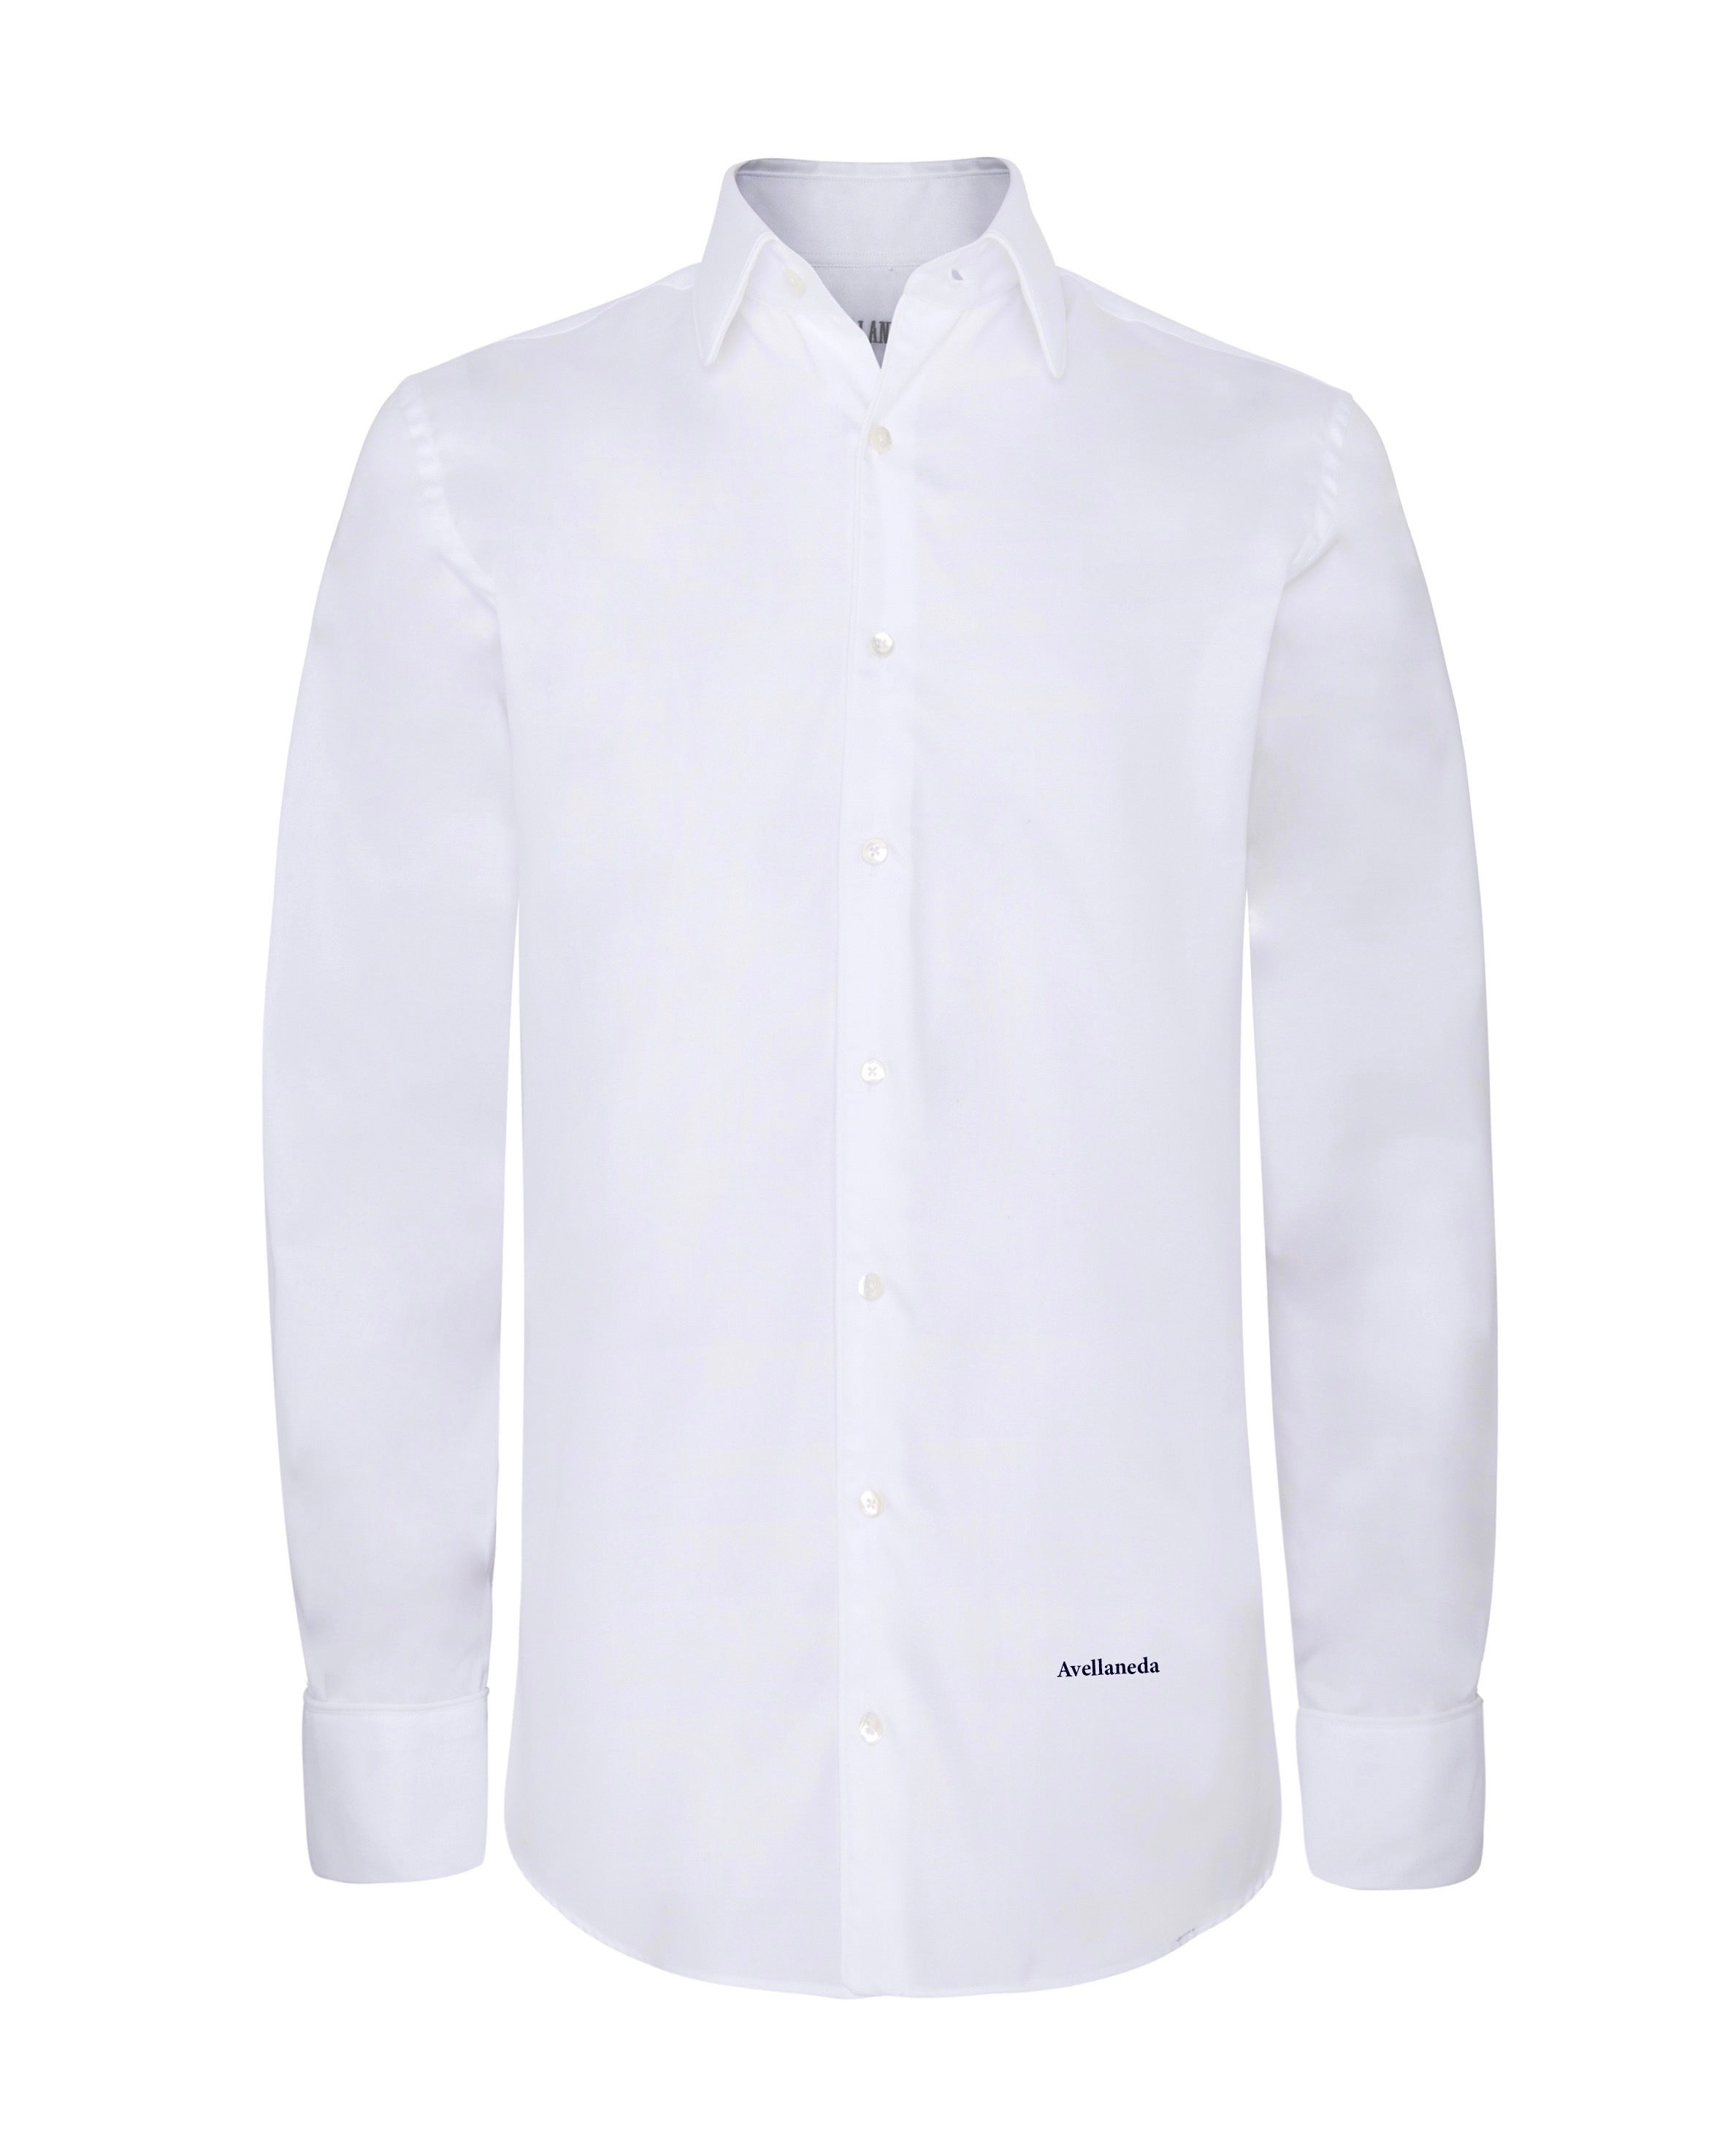 MEN'S CLASSIC WHITE SHIRT